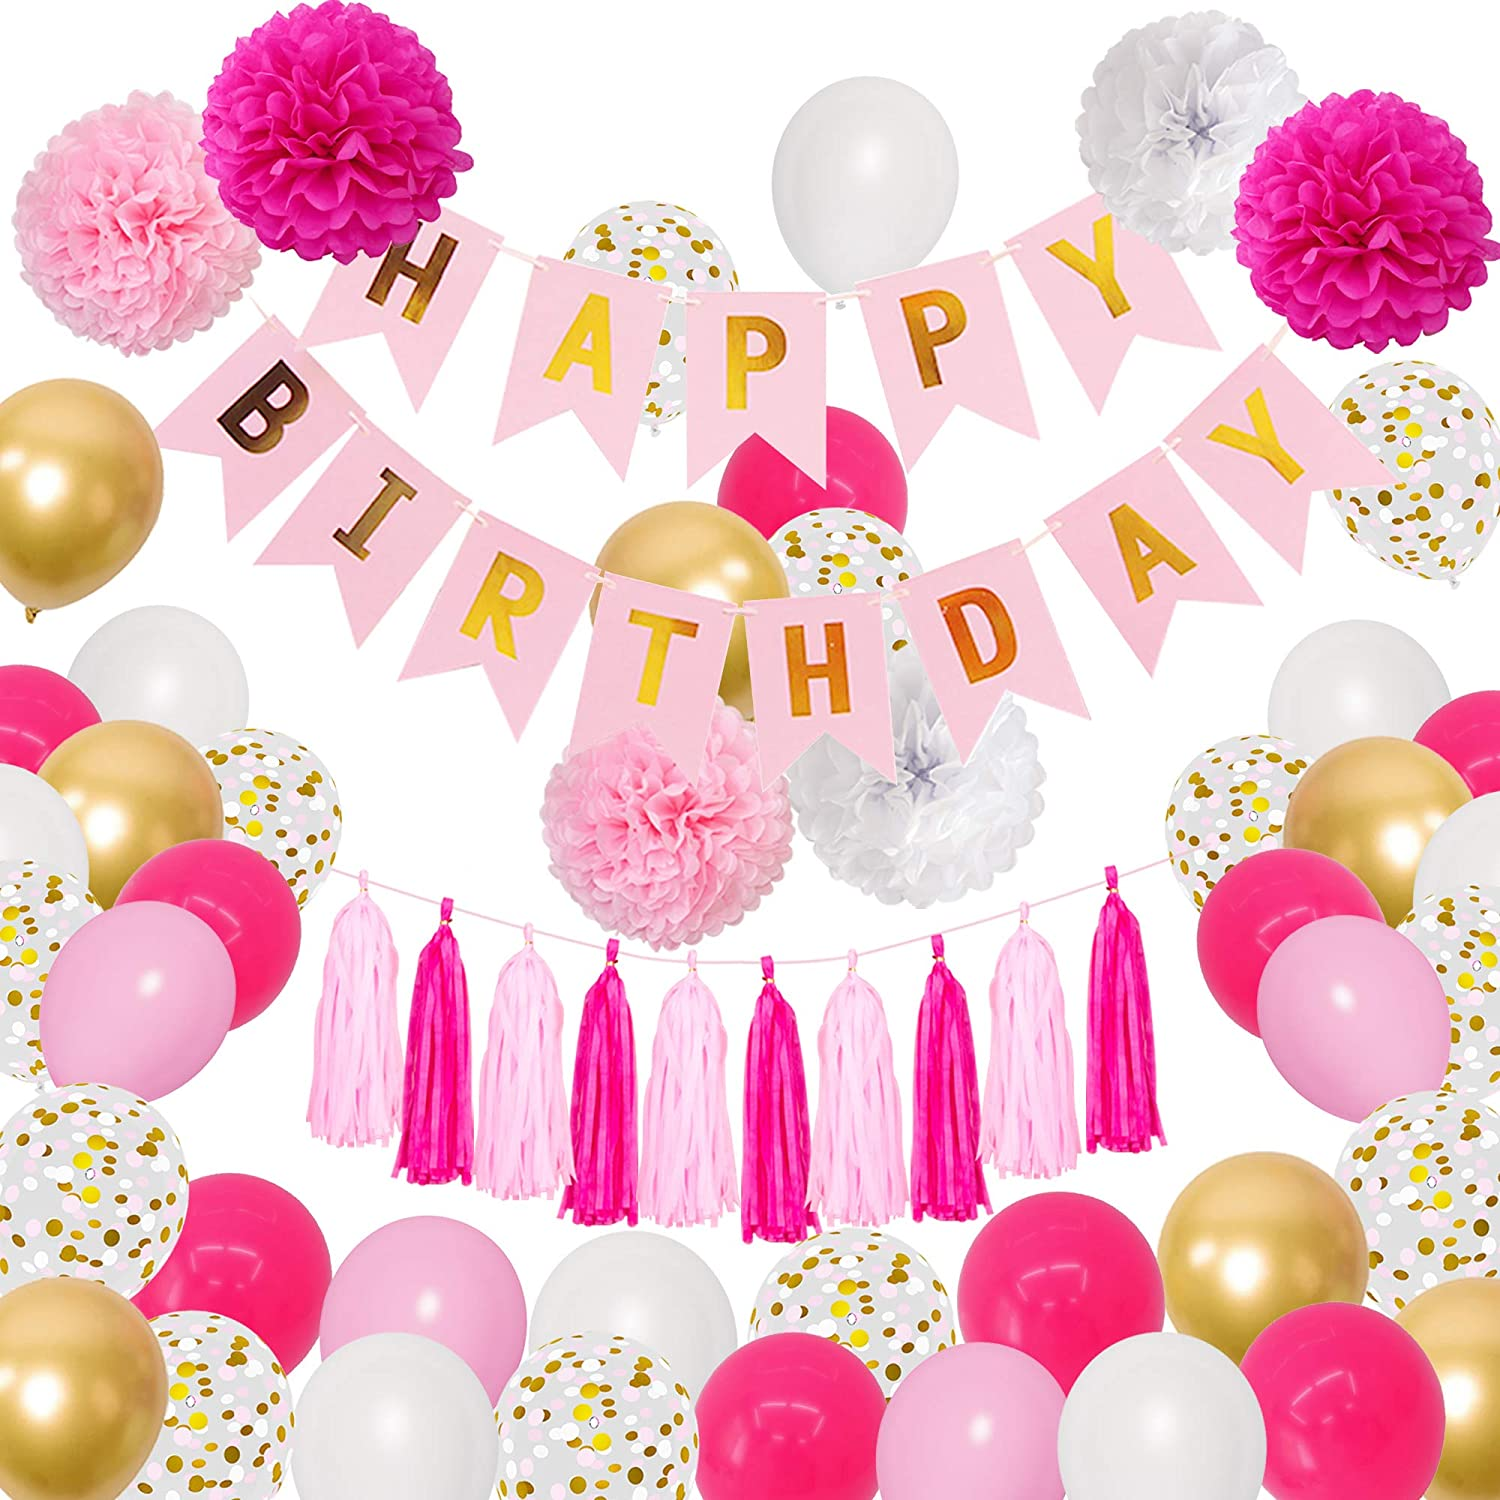 Amandir Hot Pink Birthday Party Decorations, Pink Gold White Confetti Latex Metallic Balloons with Happy Birthday Banner Paper Pom Poms Tassels Birthday Party Supplies for Women Girls